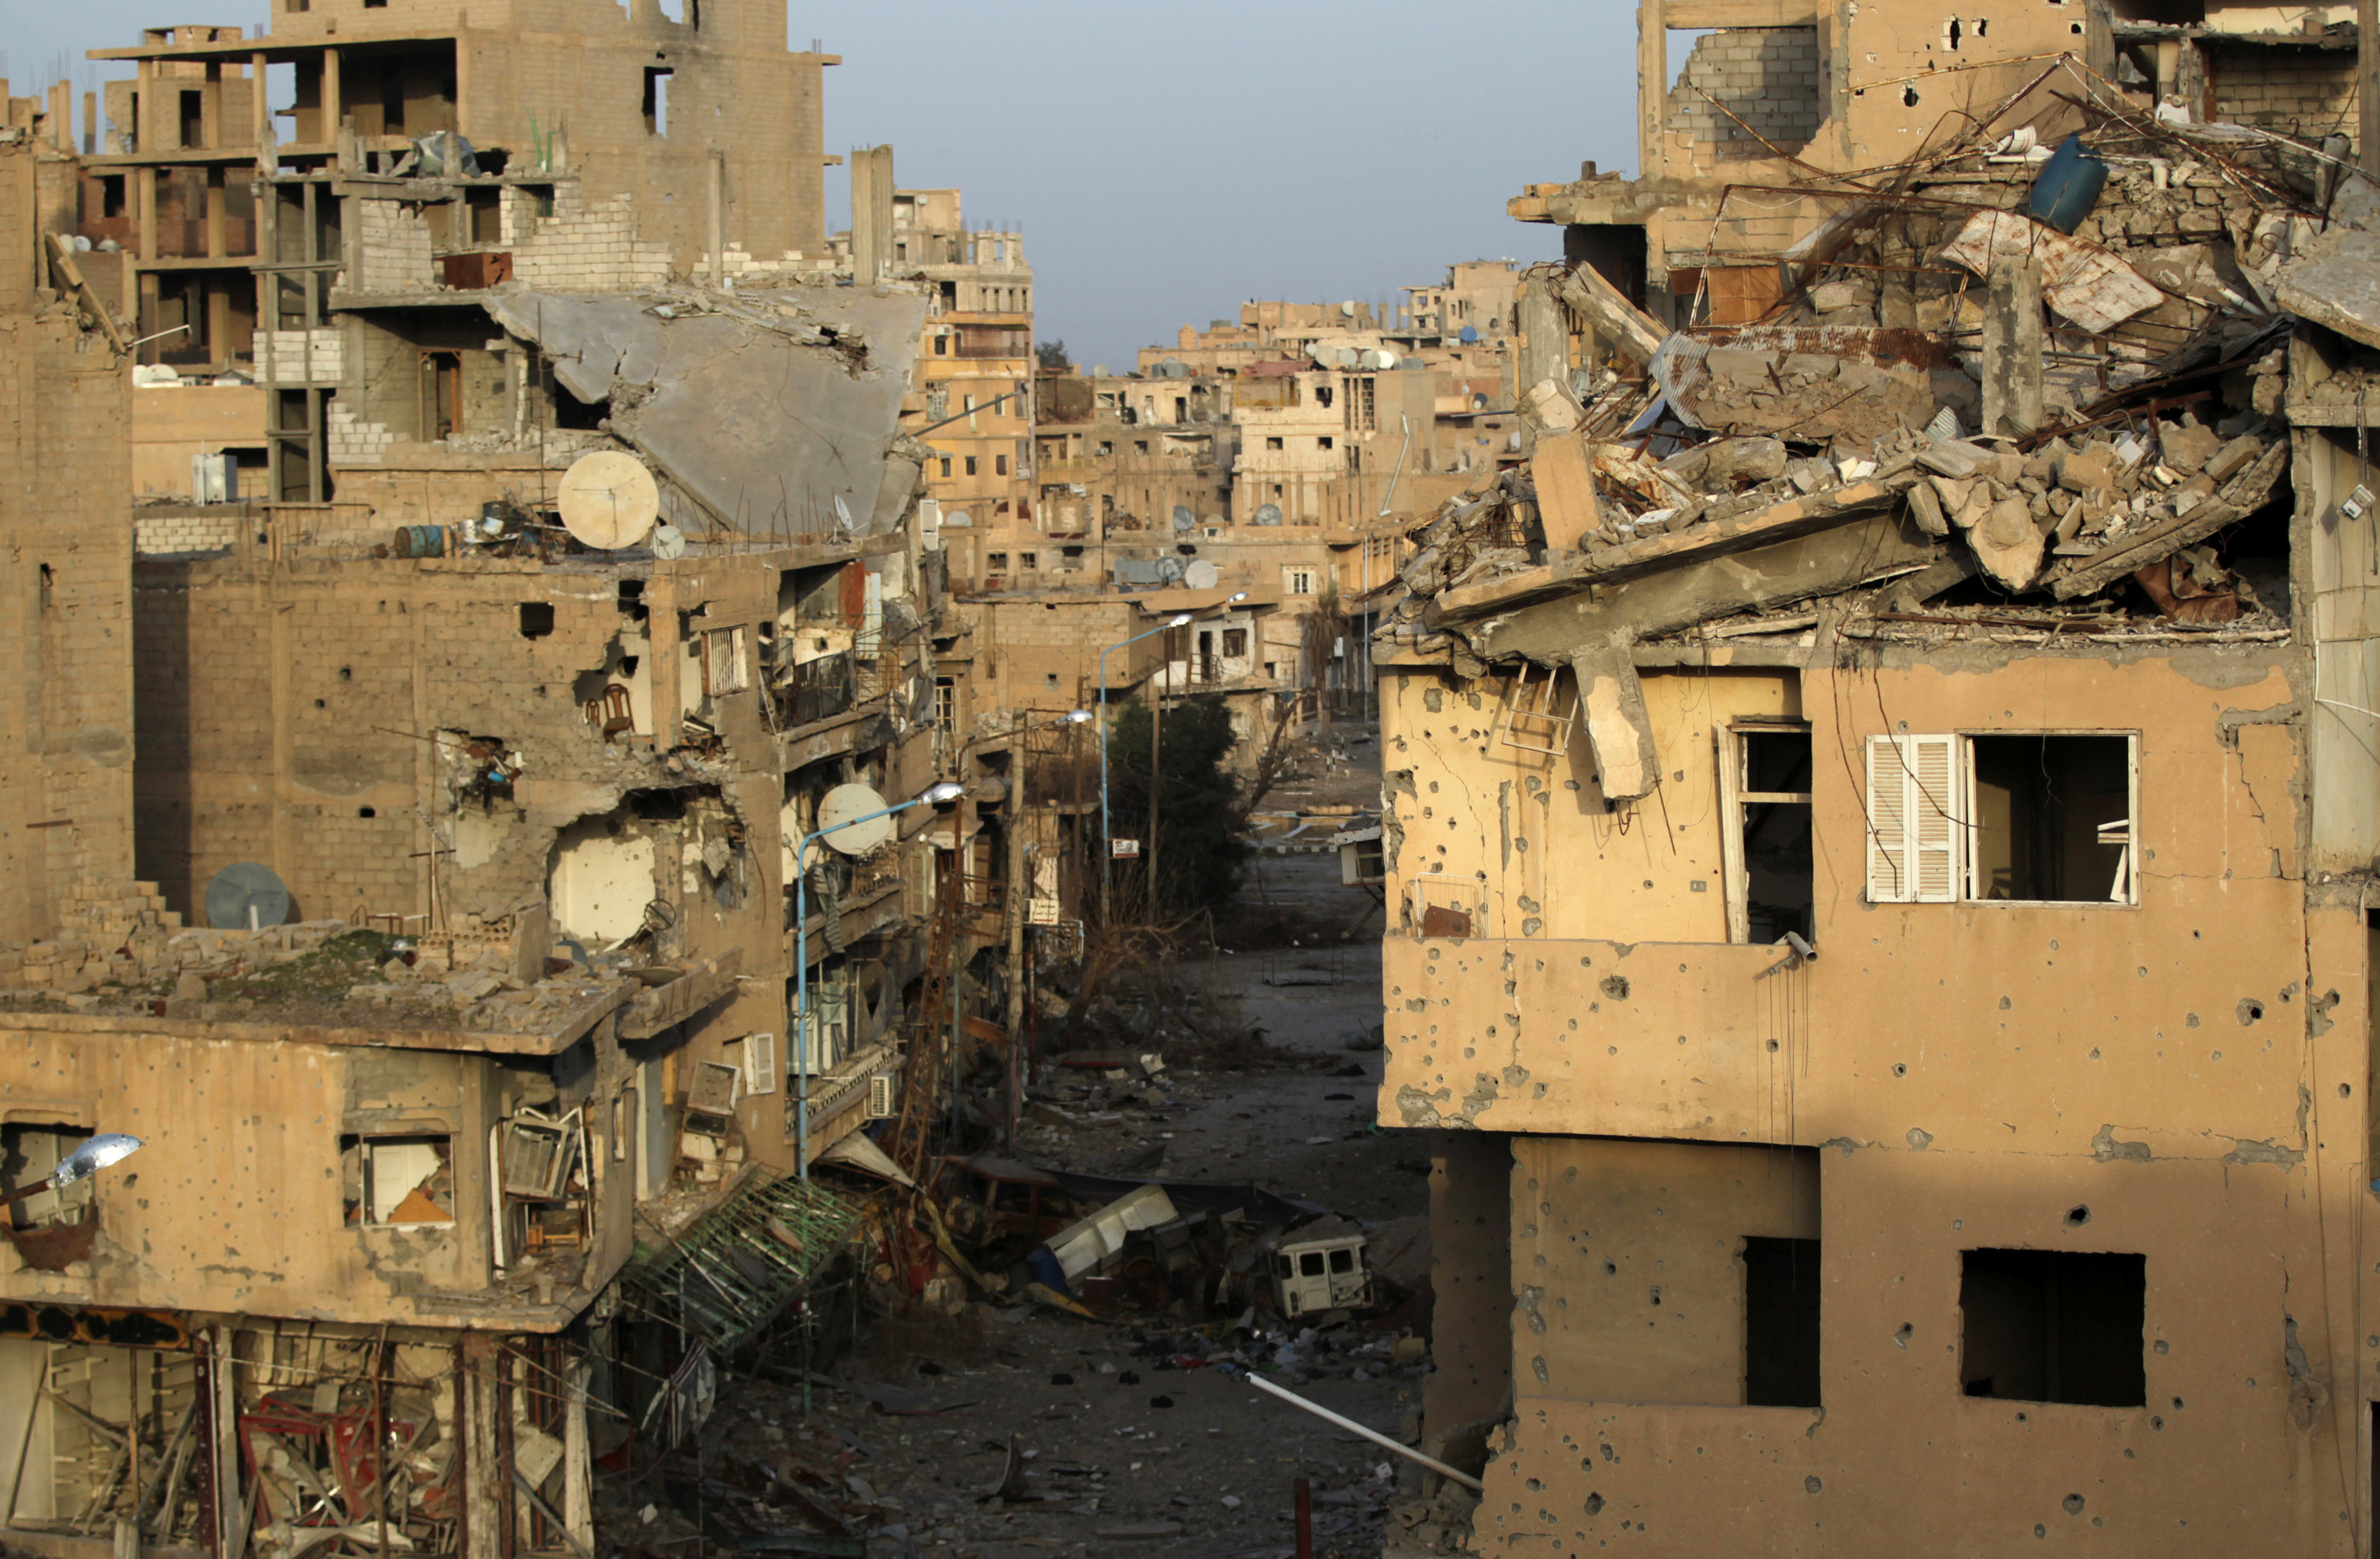 FILE PHOTO: A view shows damaged buildings in Deir al-Zor, eastern Syria February 19, 2014. REUTERS/Khalil Ashawi/File Photo